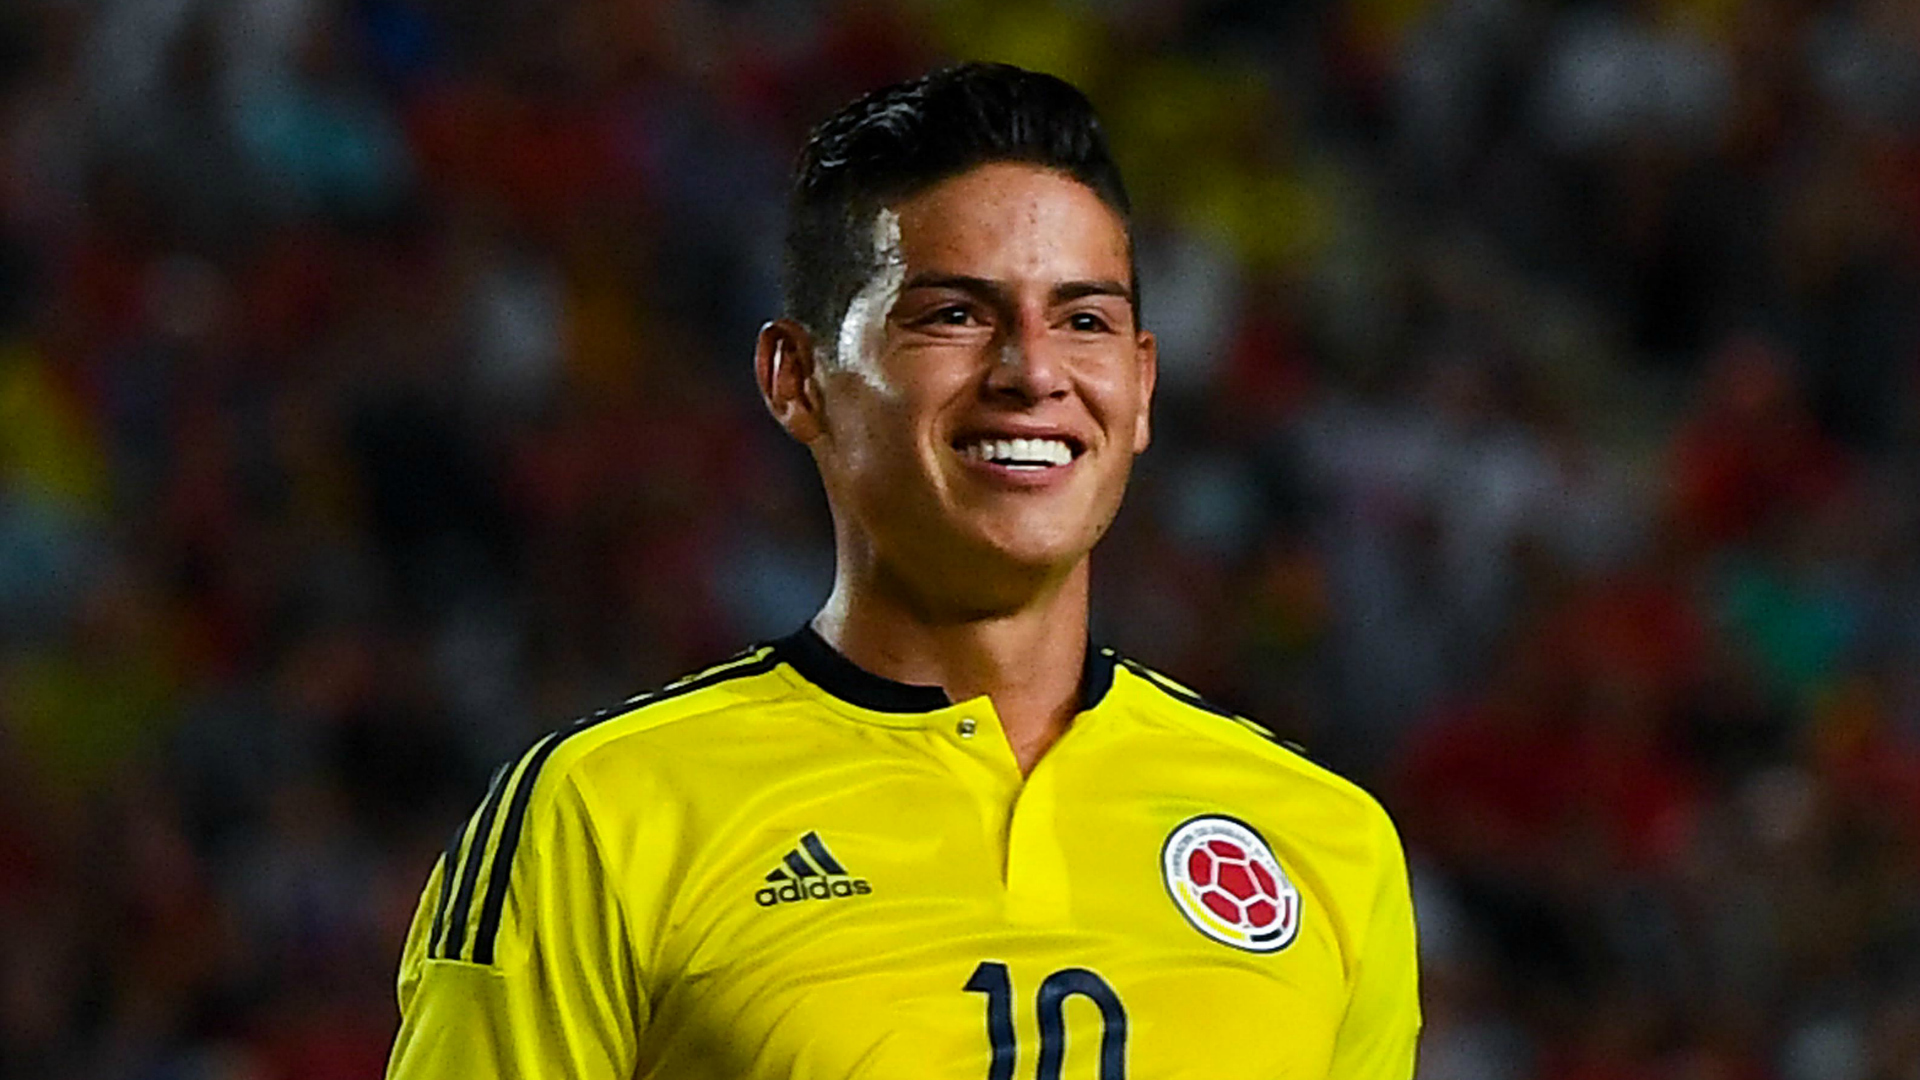 James Rodriguez with Colombia shirt